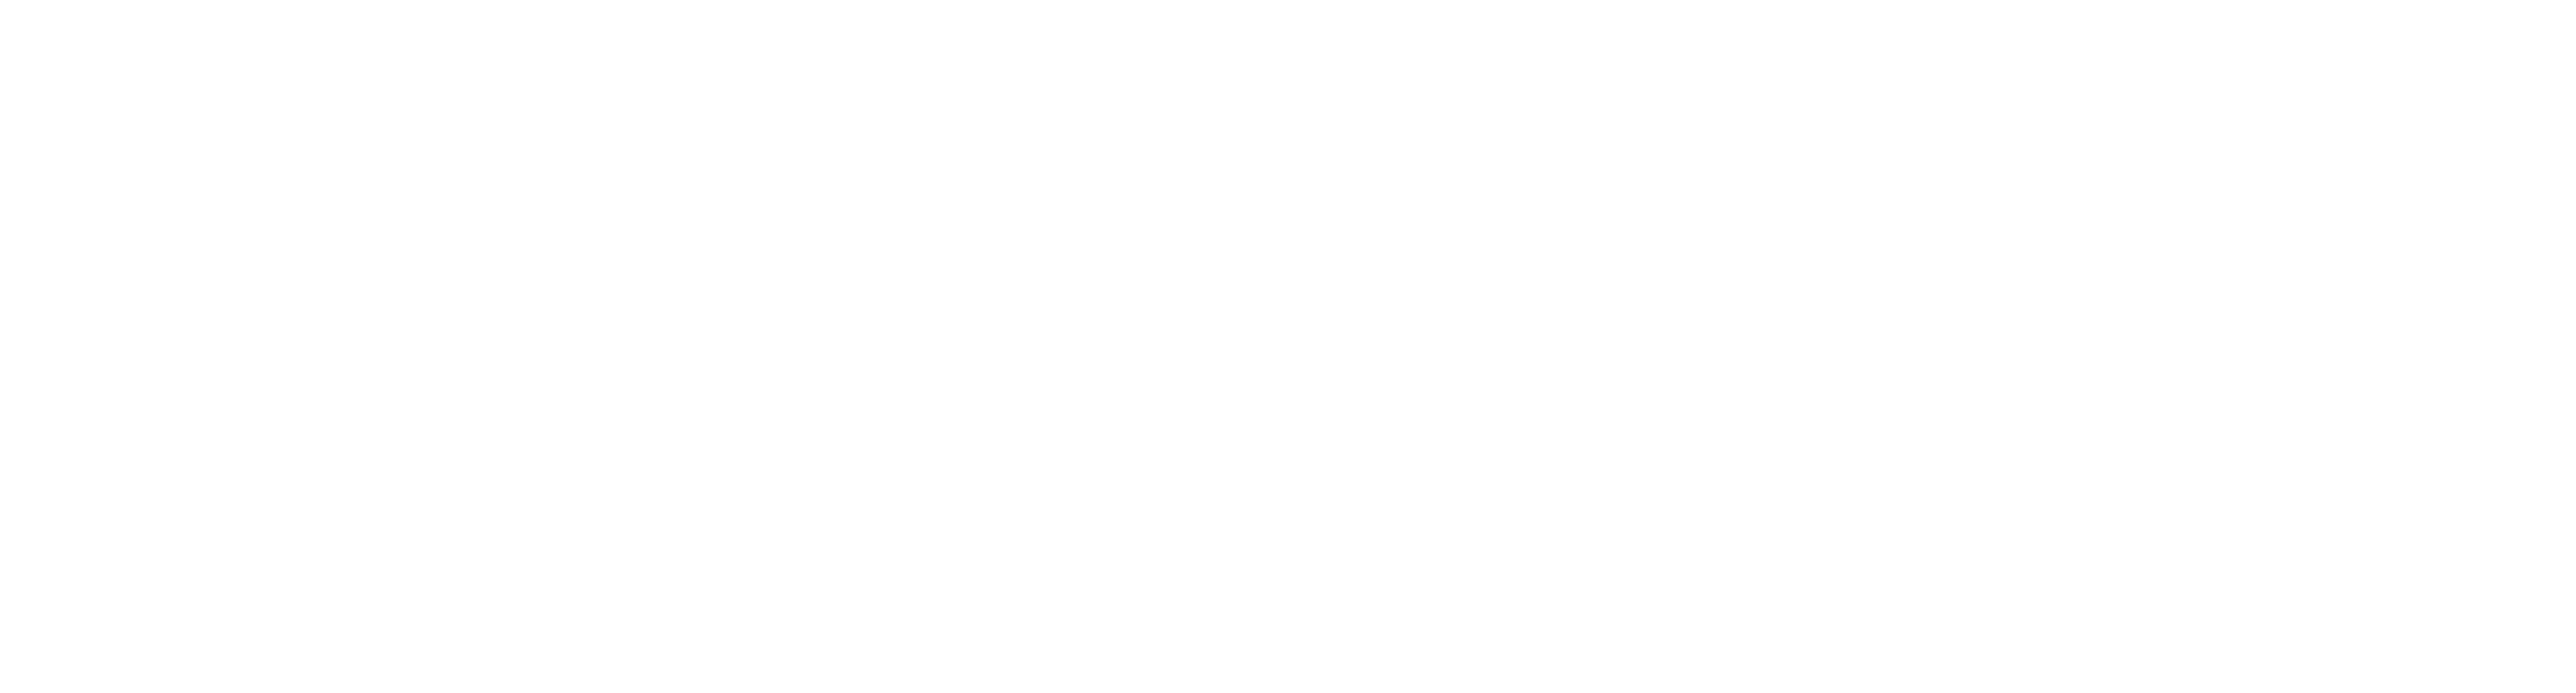 Portfolio Real Estate